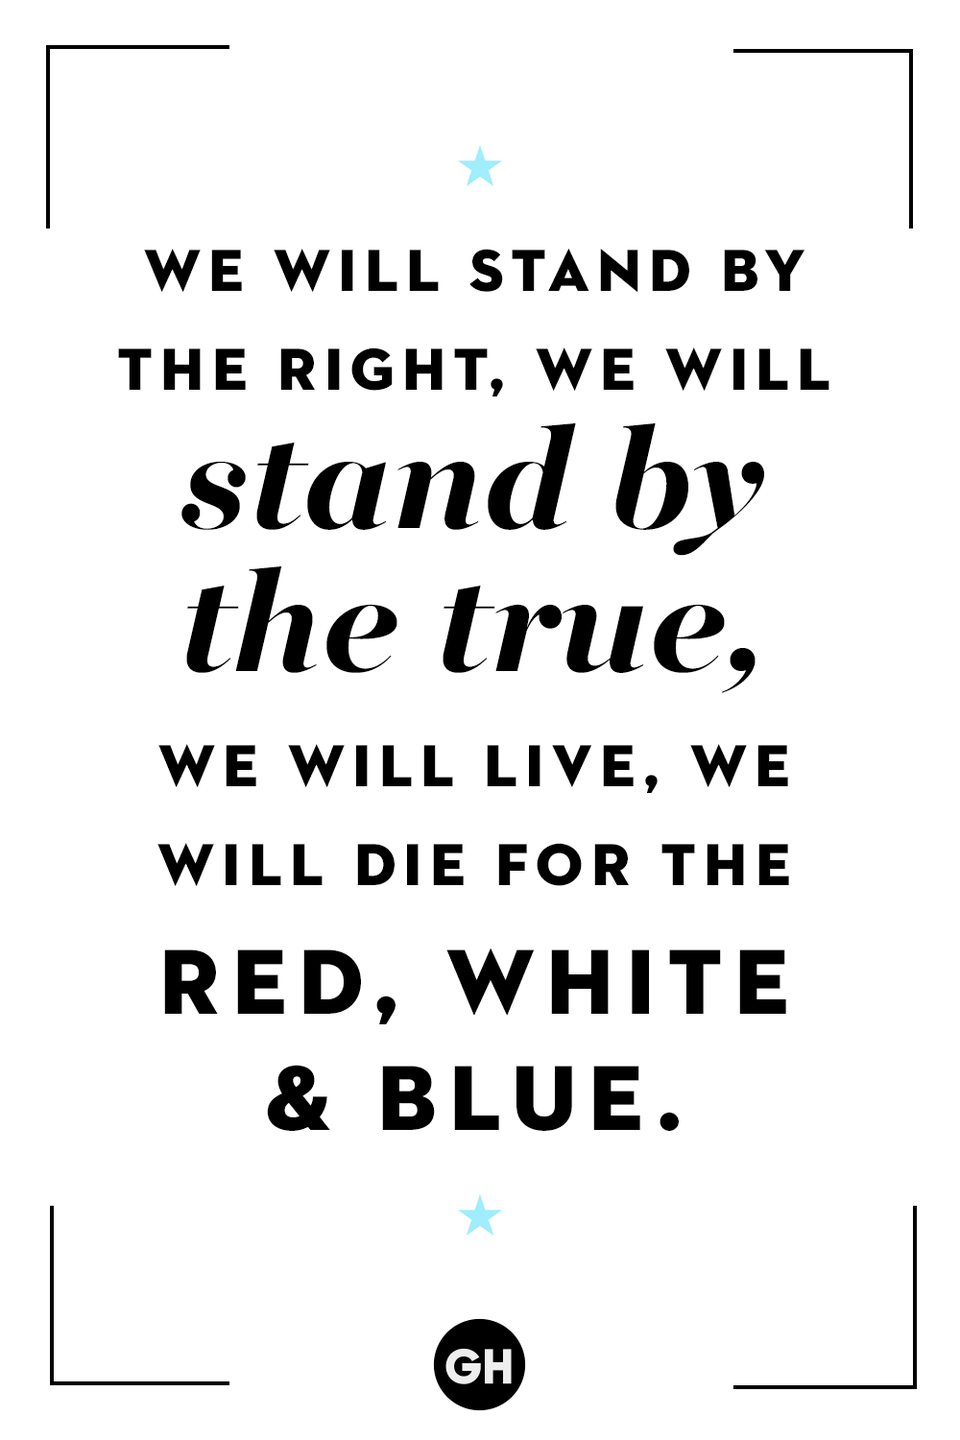 <p>We will stand by the right, we will stand by the true, we will live, we will die for the red, white, and blue.</p>